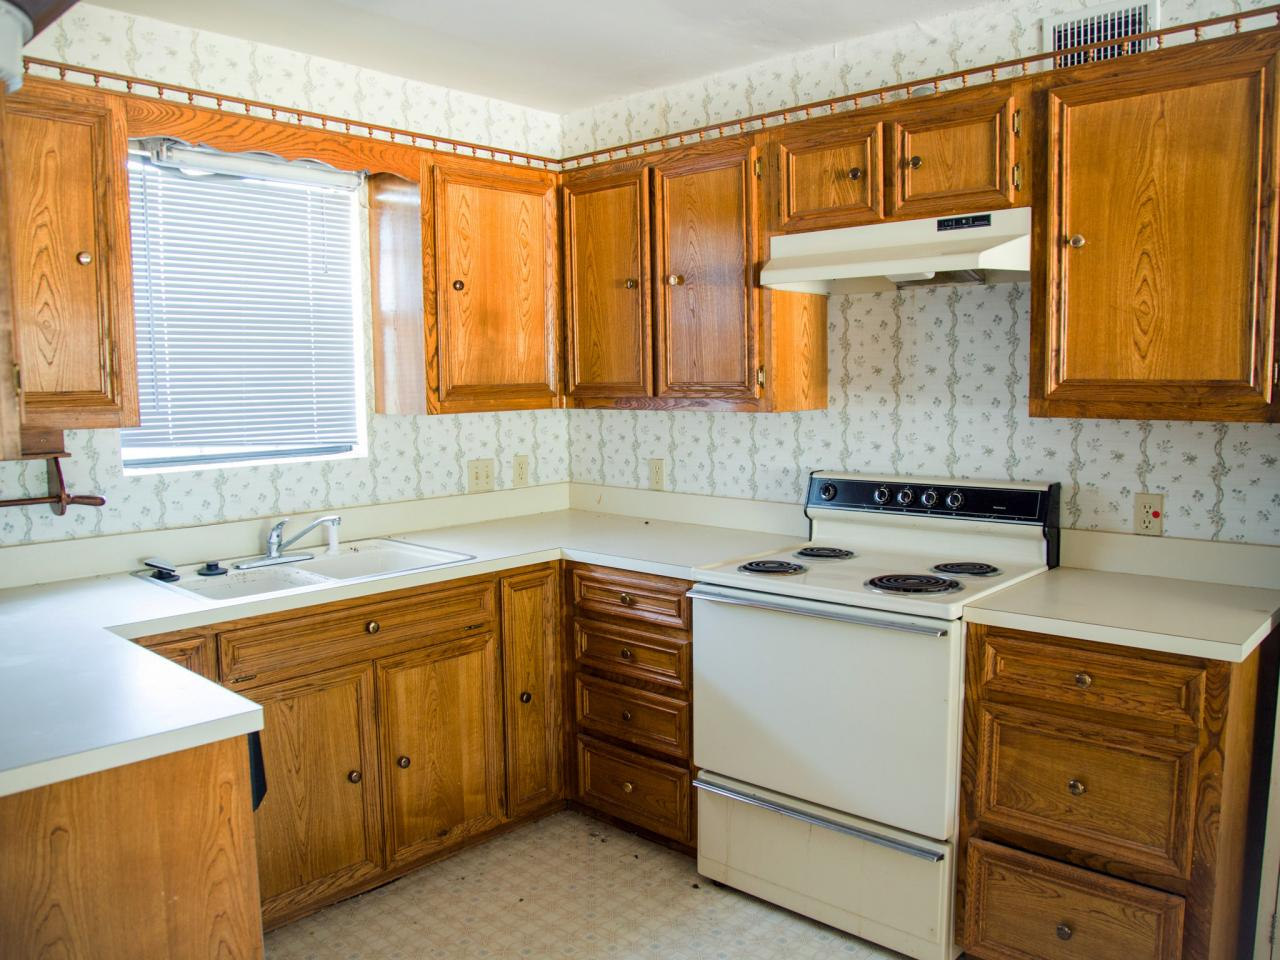 Before and After Kitchen Photos From HGTV\'s Fixer Upper | HGTV\'s ...